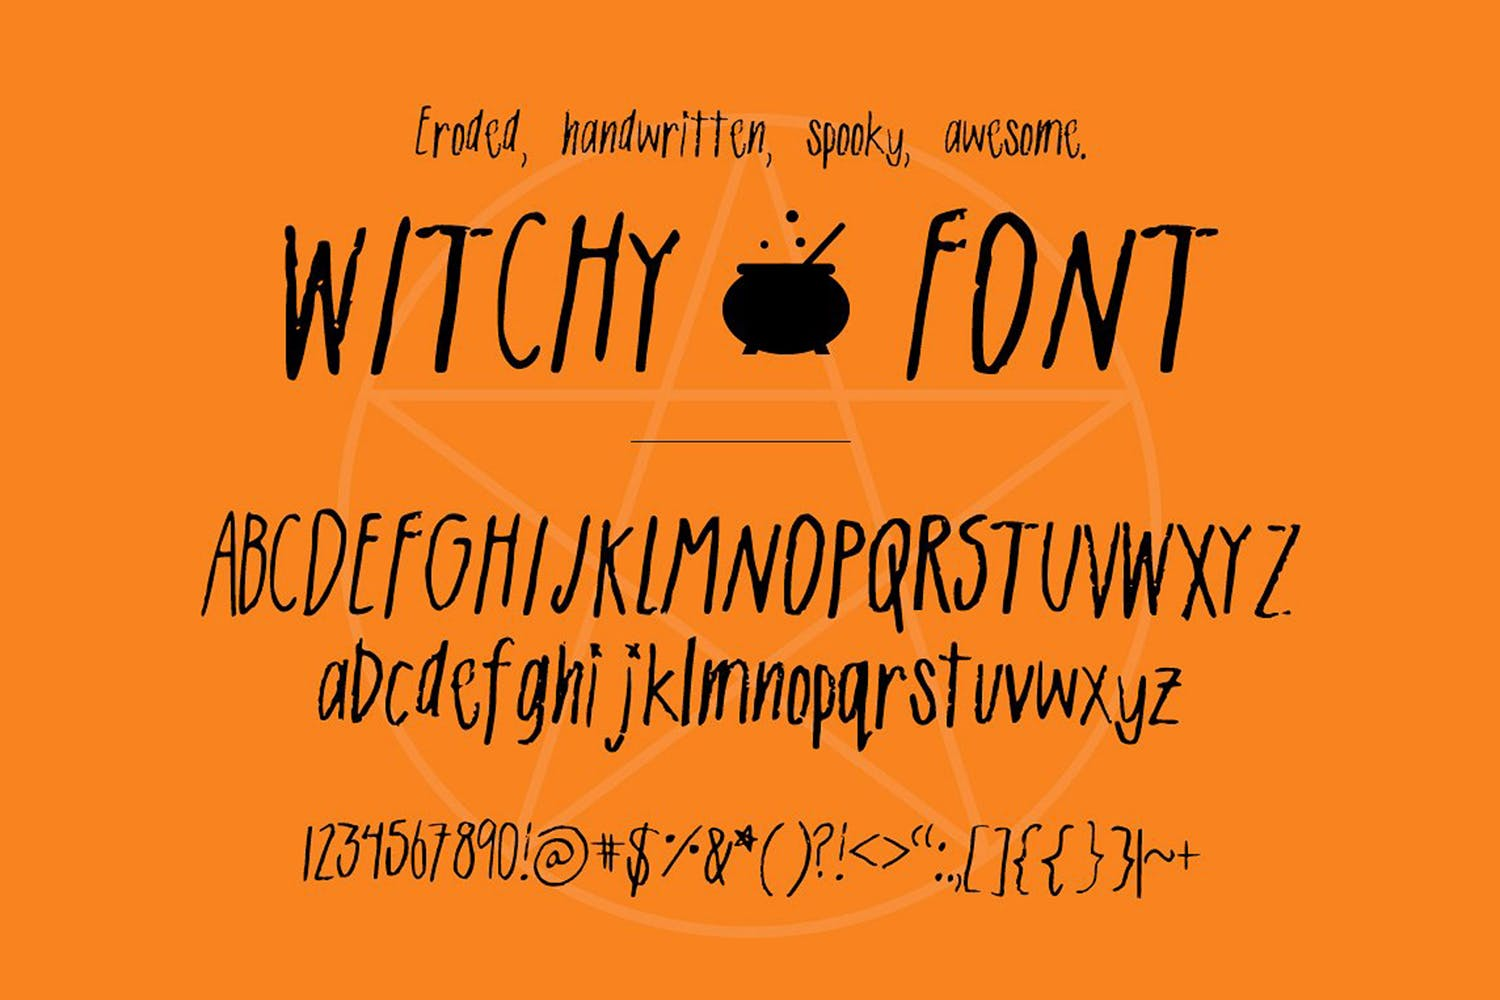 Witchy| A Spooky Sans-Serif example image 2